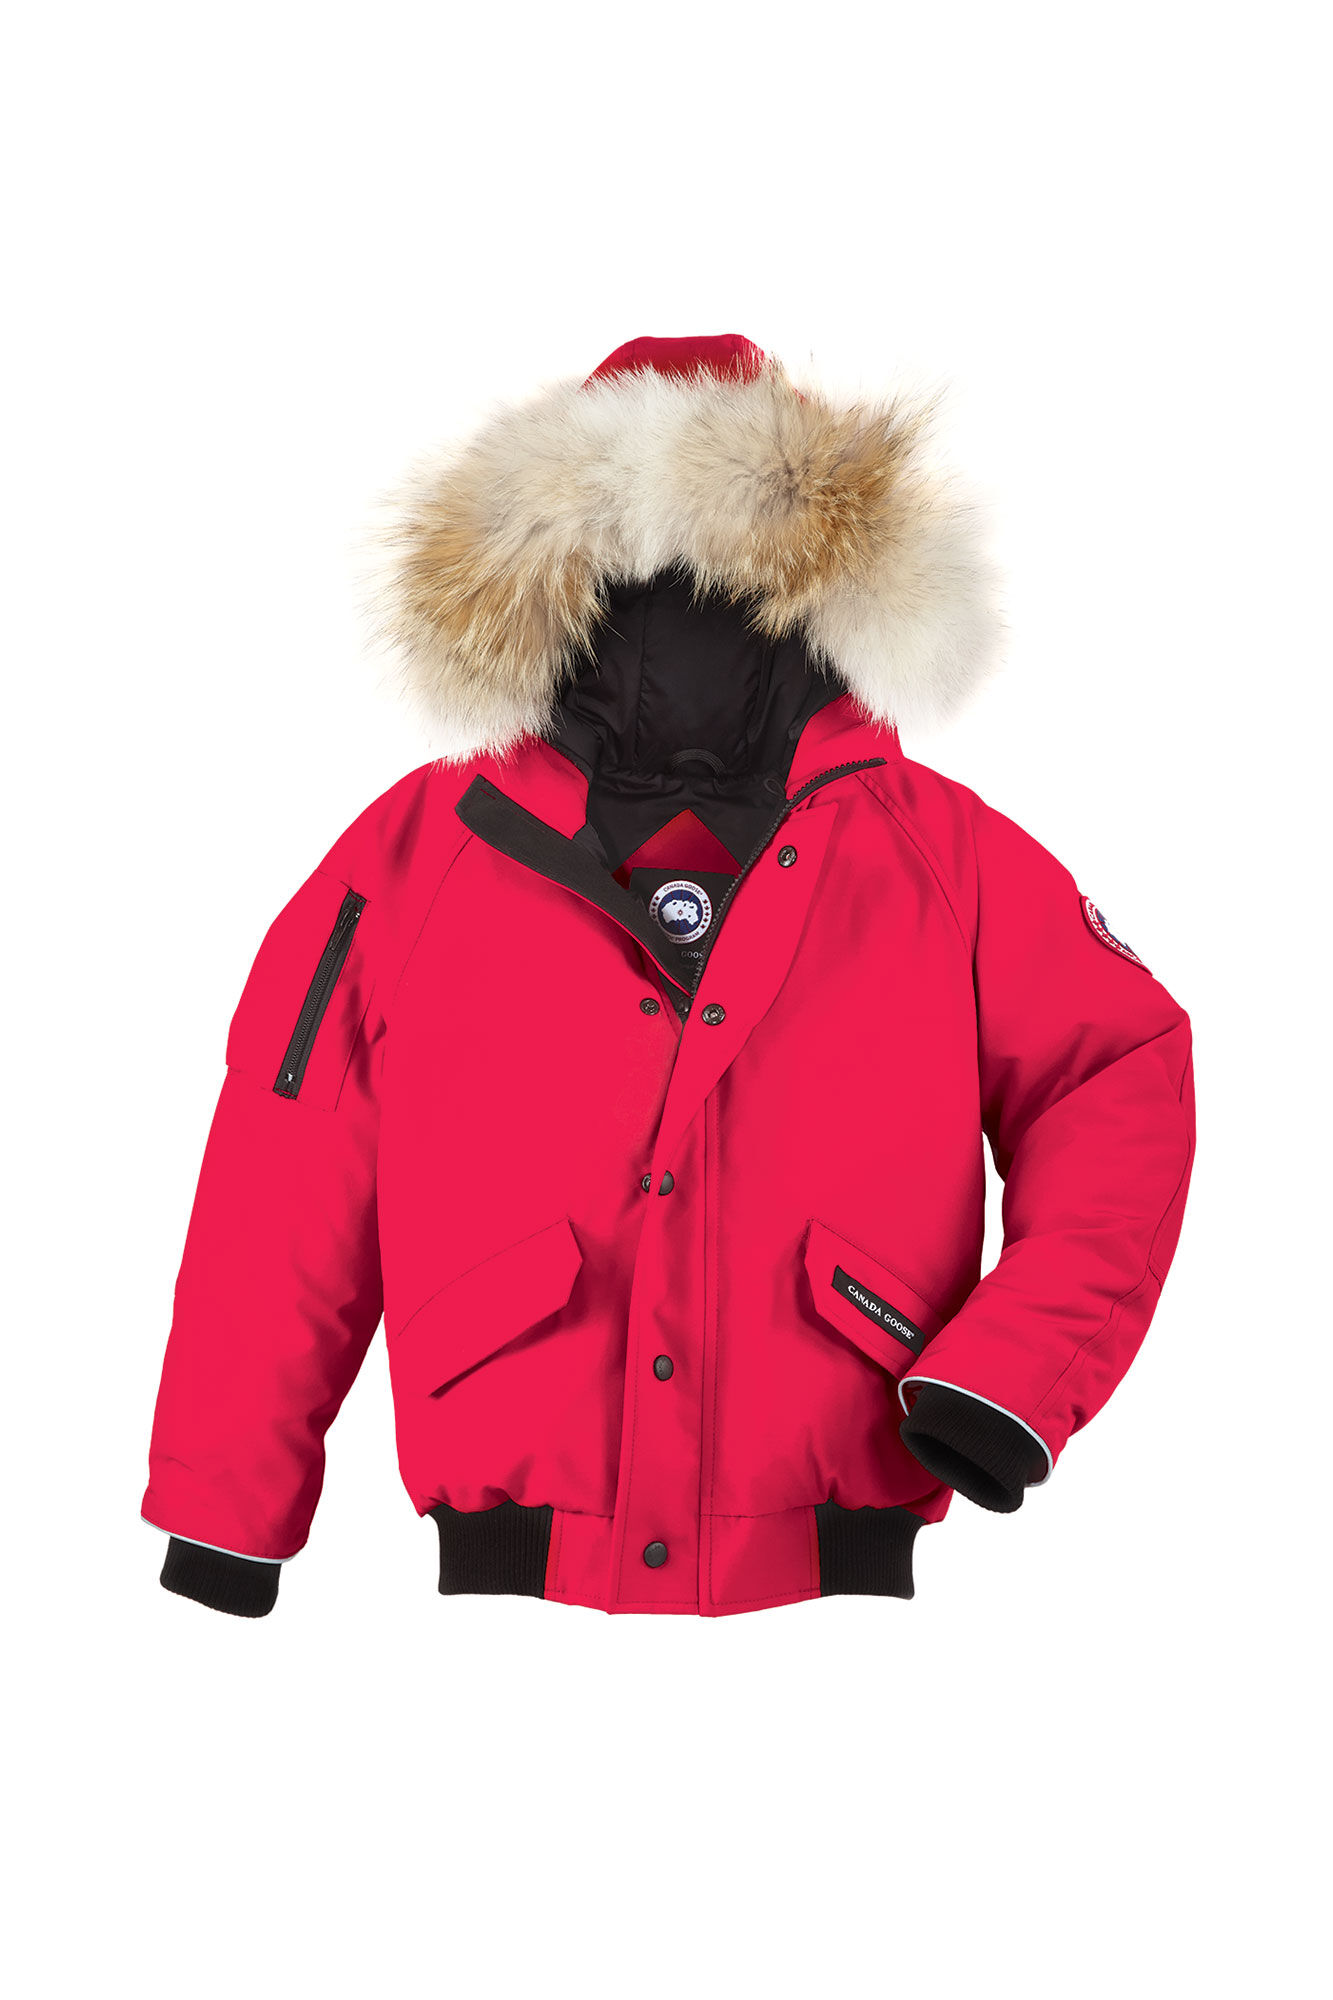 Canada Goose trillium parka sale authentic - Youth Outerwear | Parkas Pants Gloves | Canada Goose?